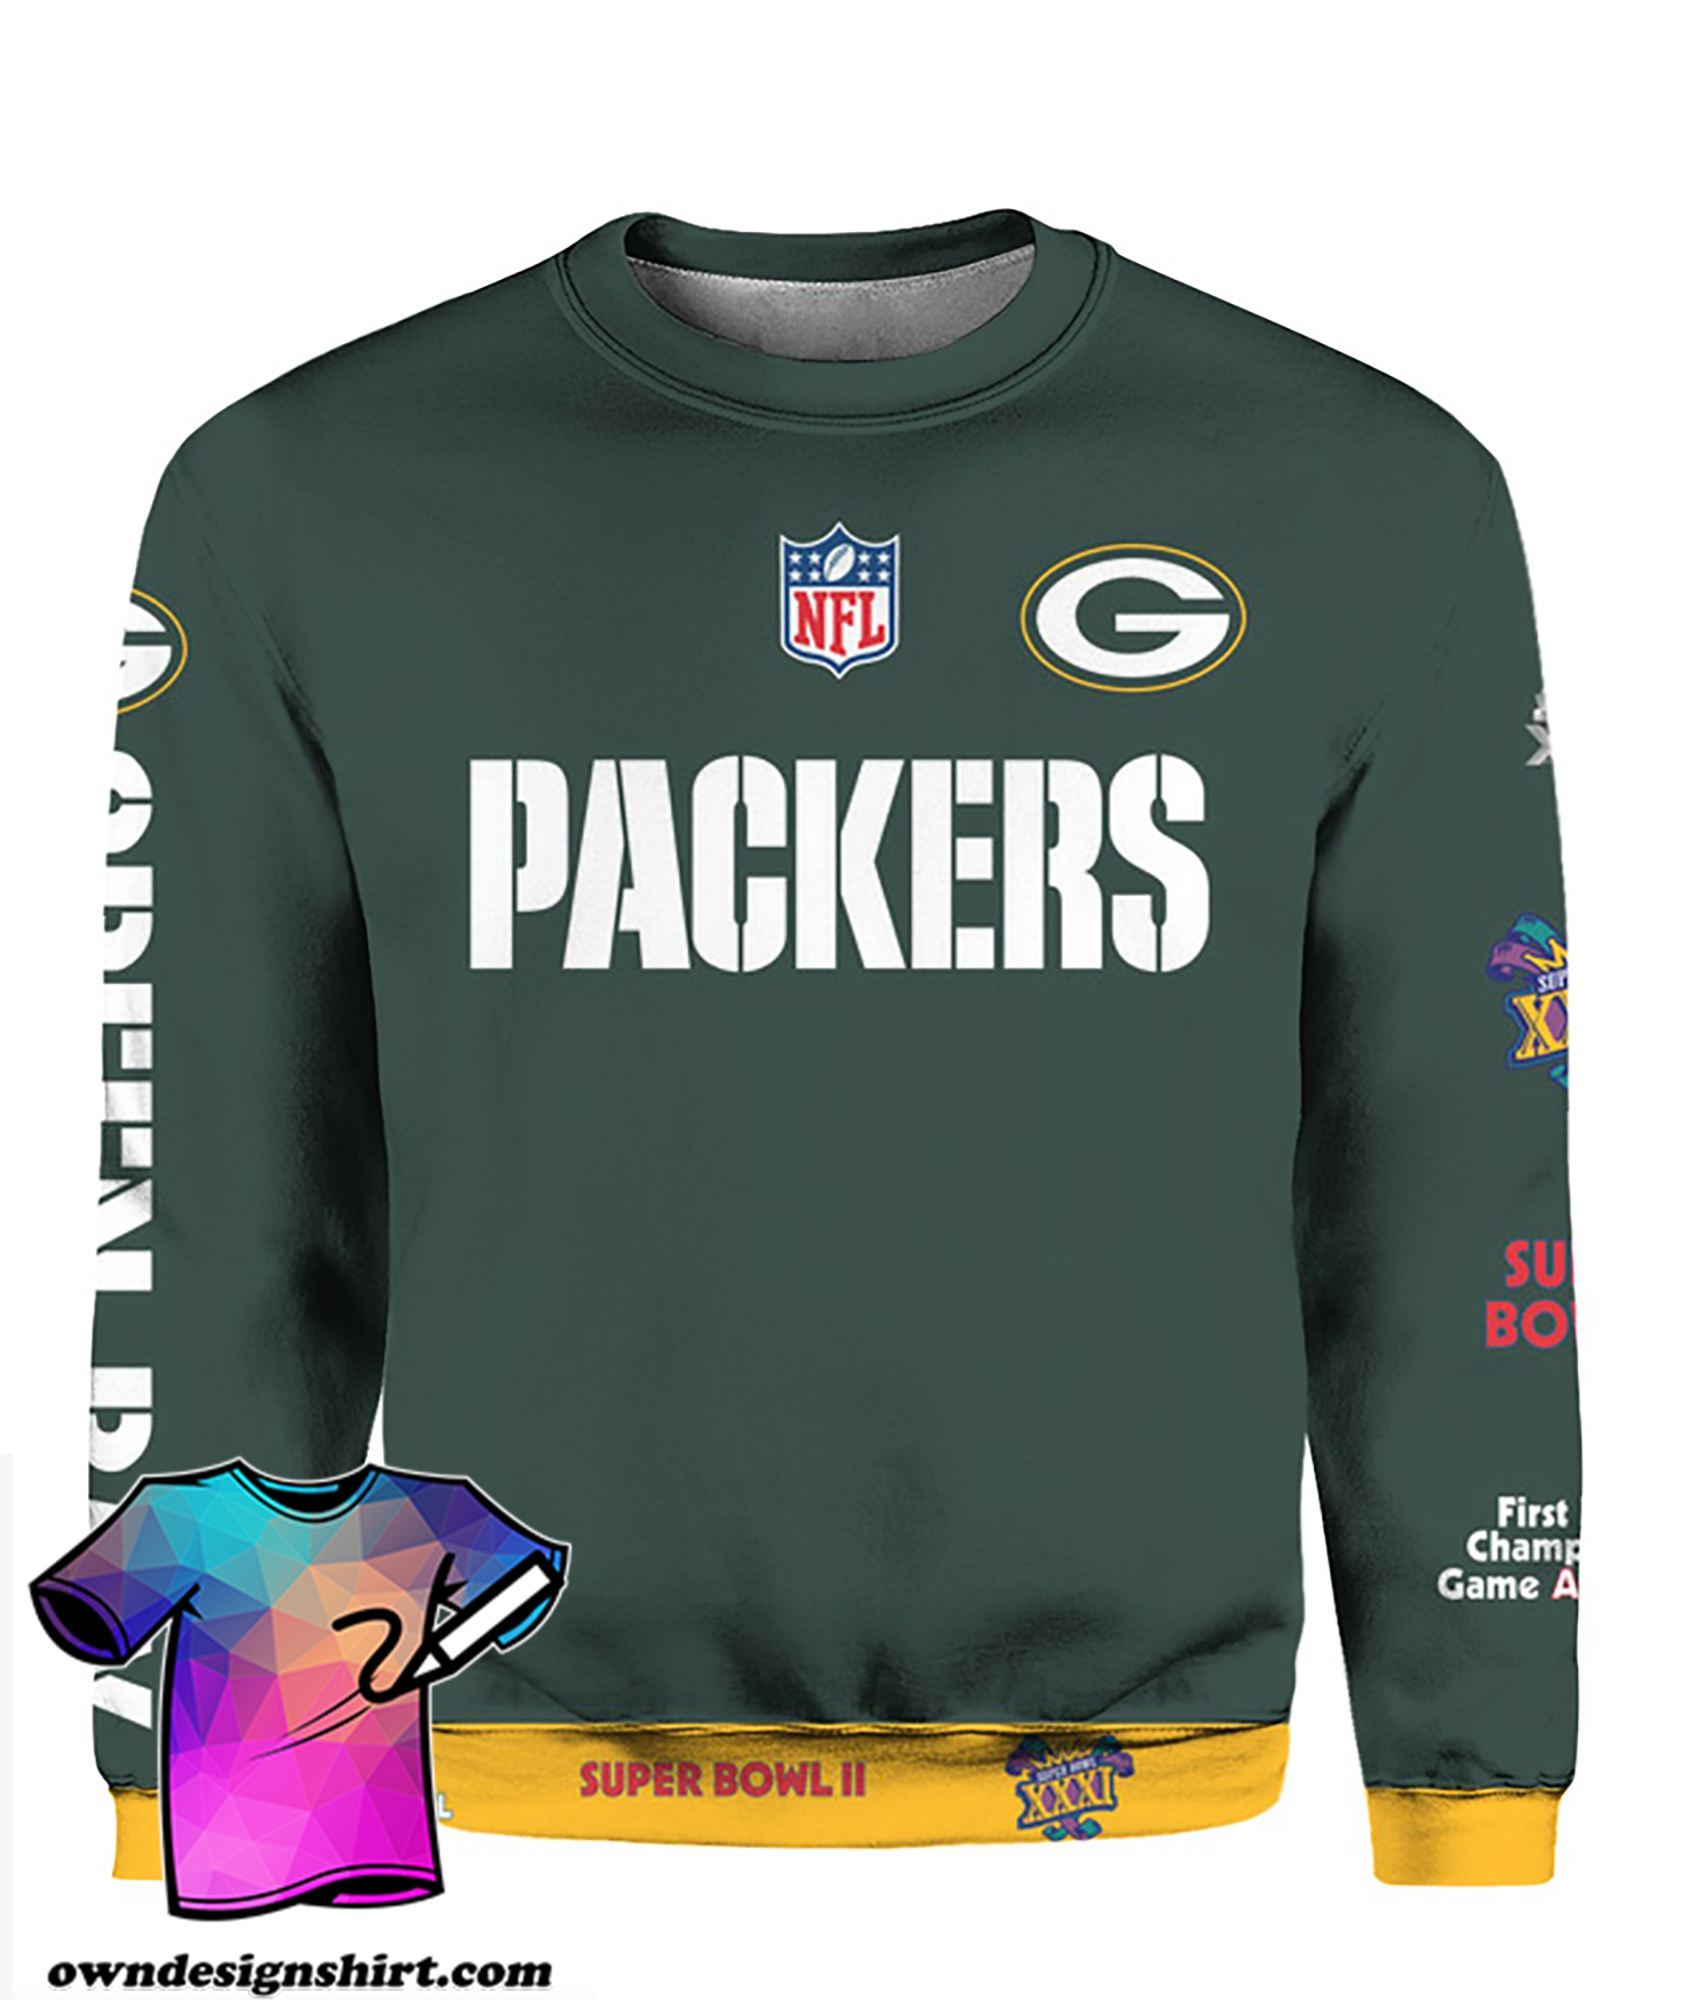 Stand for the flag kneel for the cross green bay packers all over print shirt